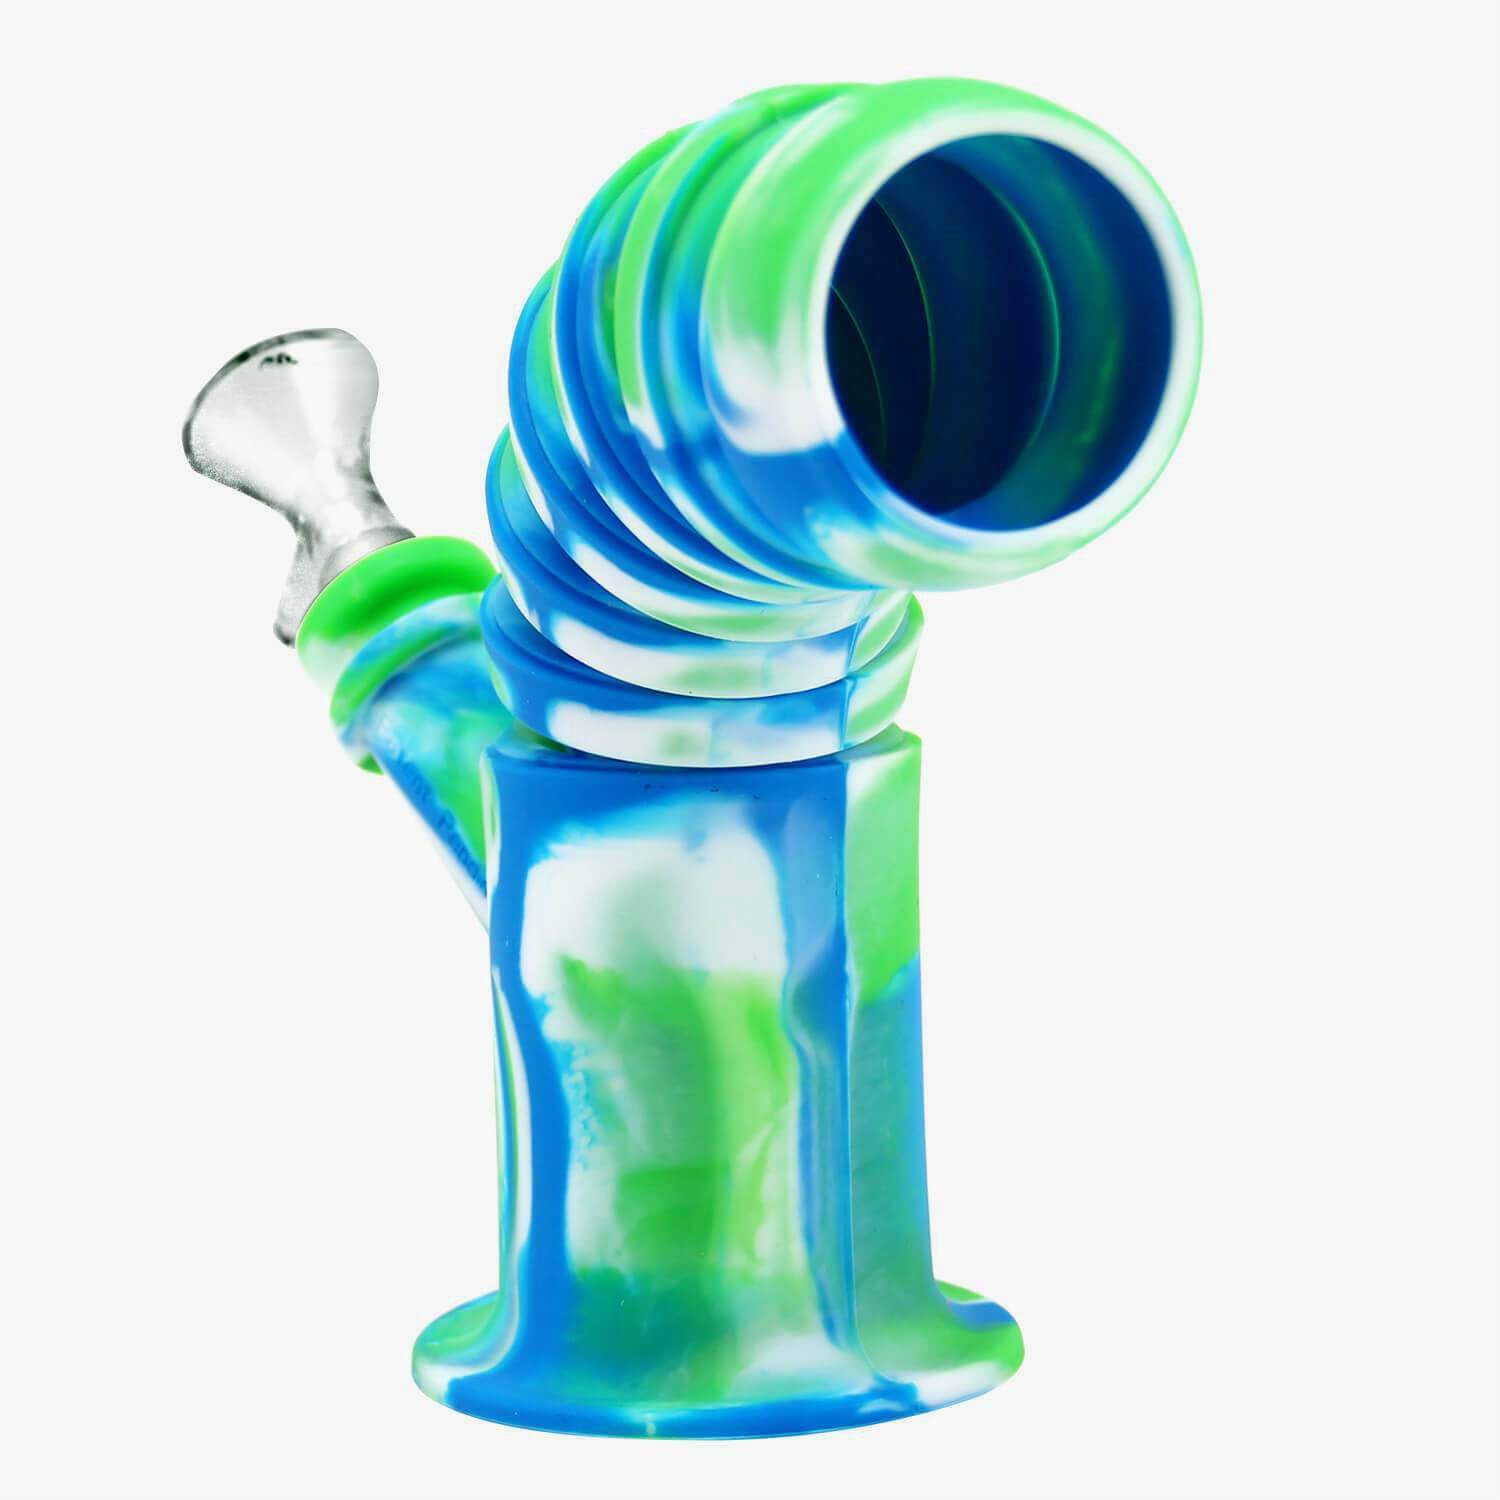 Quality Silicone Bong w// Ice Pinch Glass Bowl FREE EXPED US SHIPPING